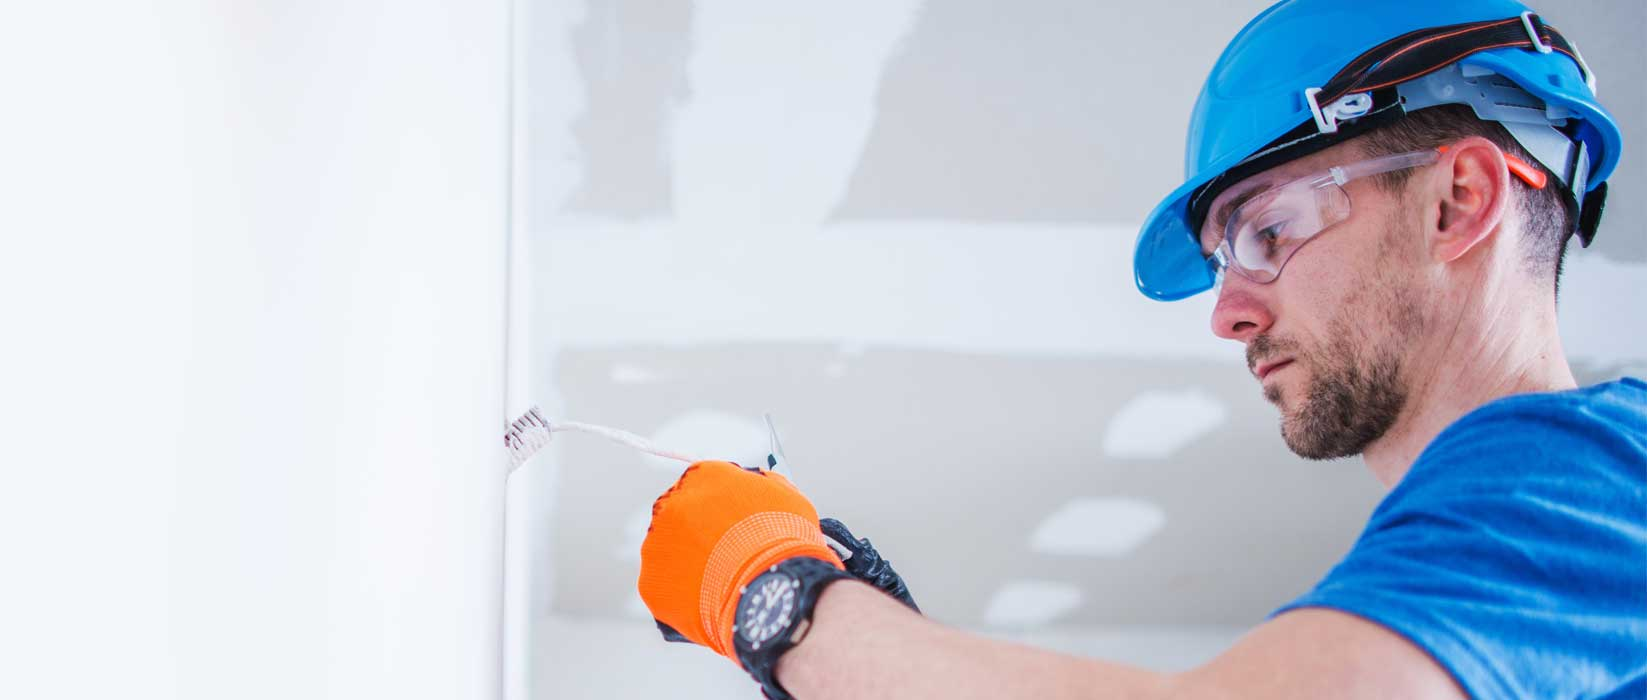 How to Identify Aluminum Wiring | Electrician in Edmonton AB | Electrician in Fort Saskatchewan AB | Electrician in Sherwood Park AB | Electrician in. St. Albert AB